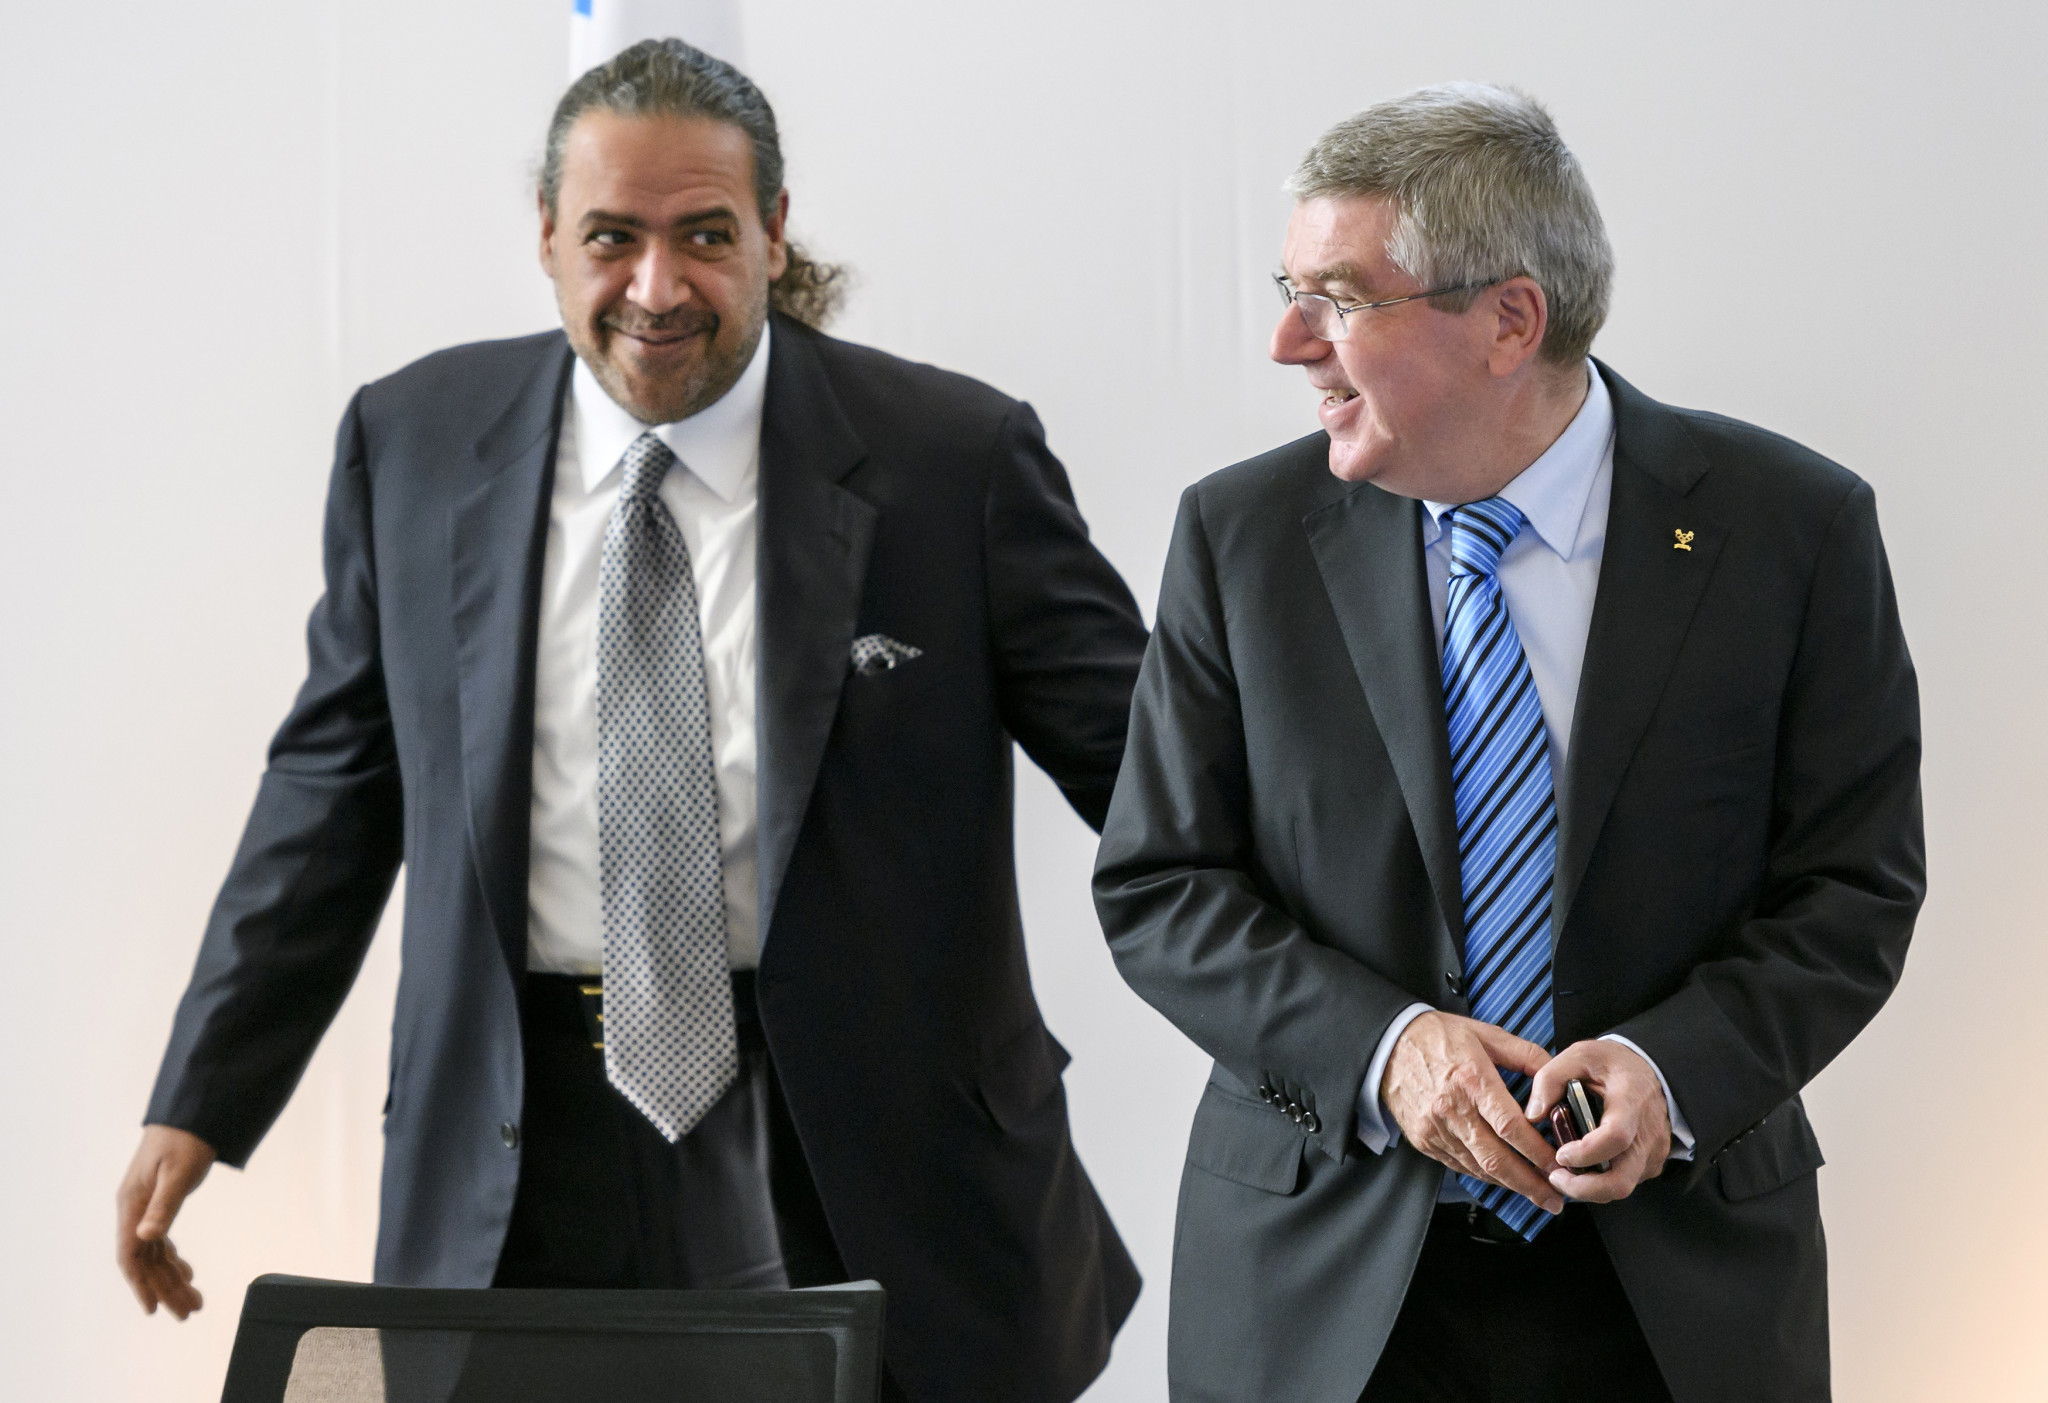 Kuwait's Sheikh Ahmad Al-Fahad Al-Sabah, left, pictured with IOC President Thomas Bach, was among those attending the Olympic Summit in Lausanne today ©Getty Images